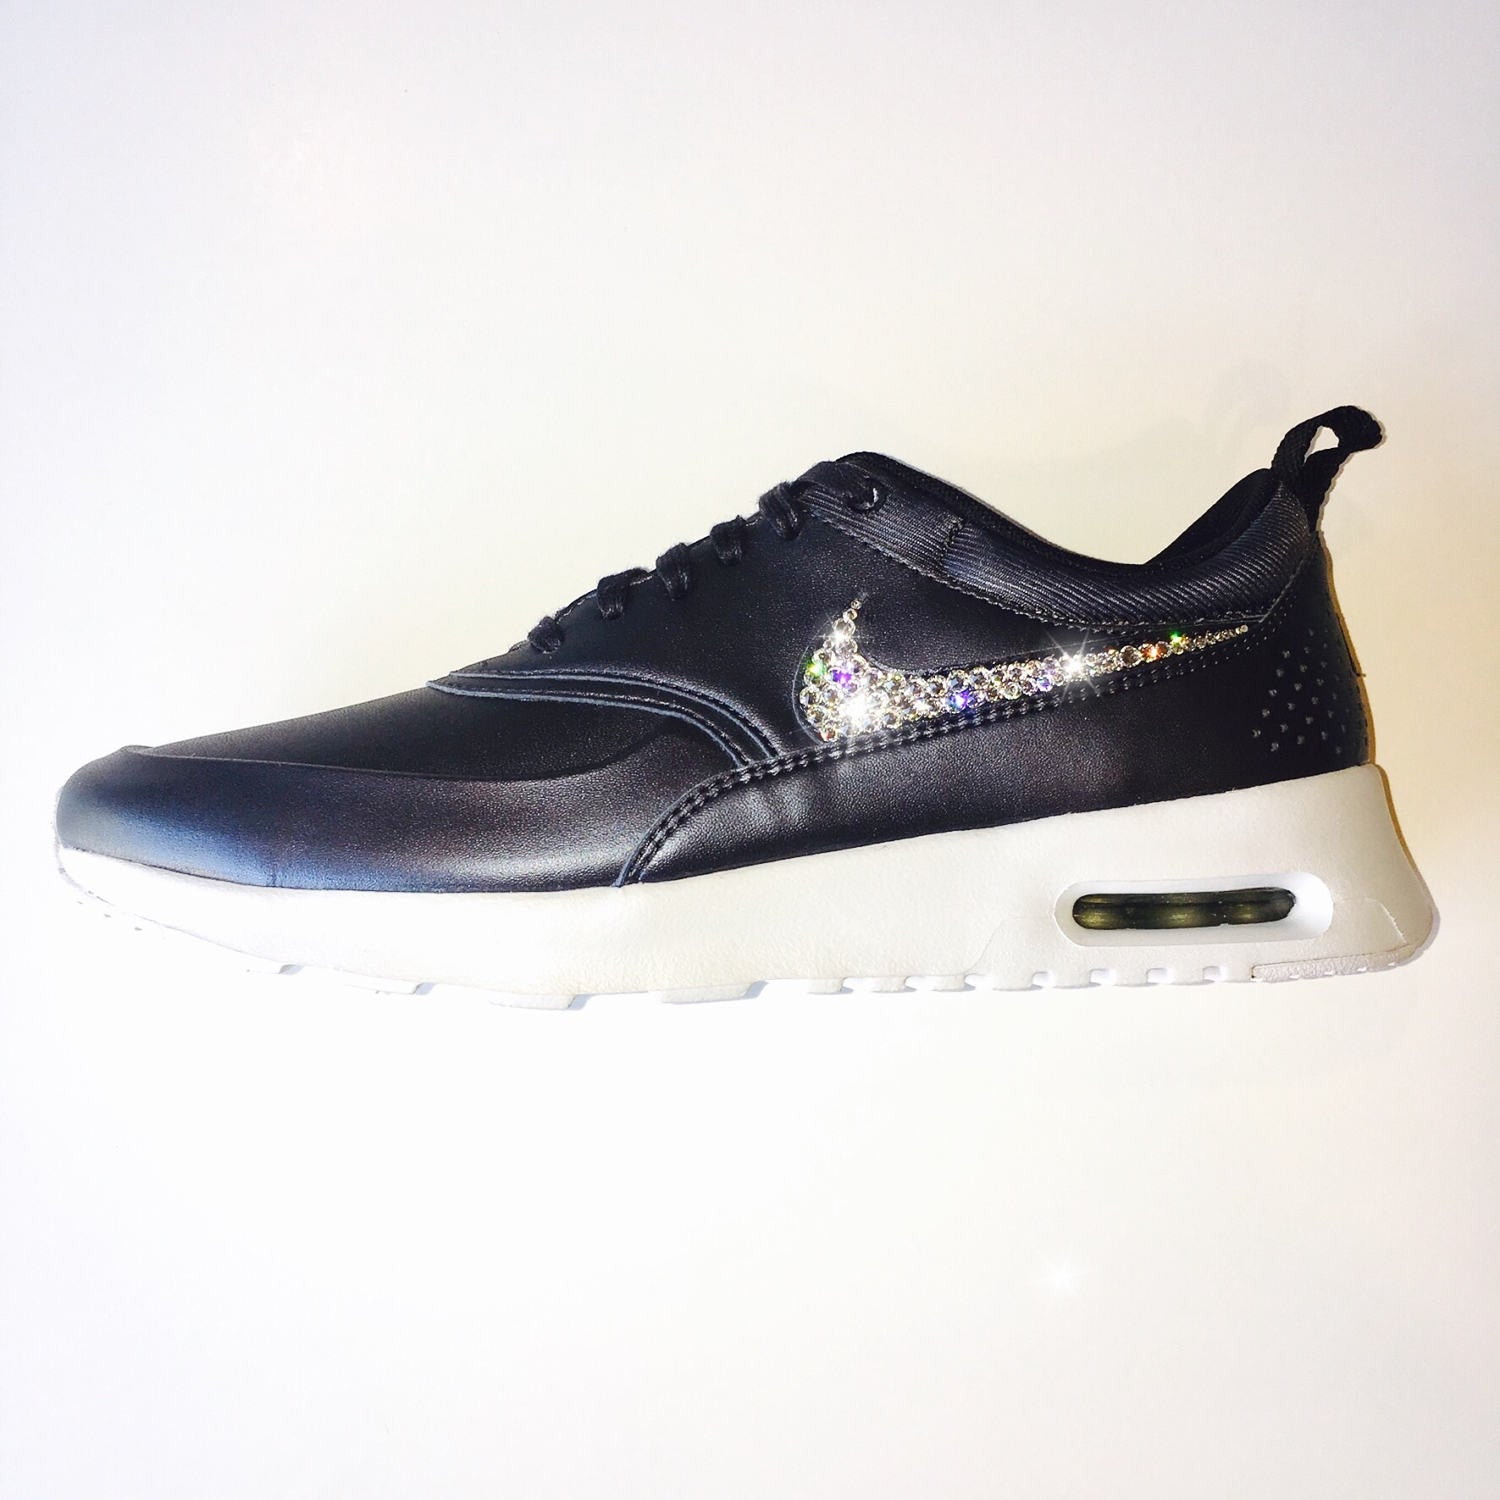 nike air max thea with swarovski elements